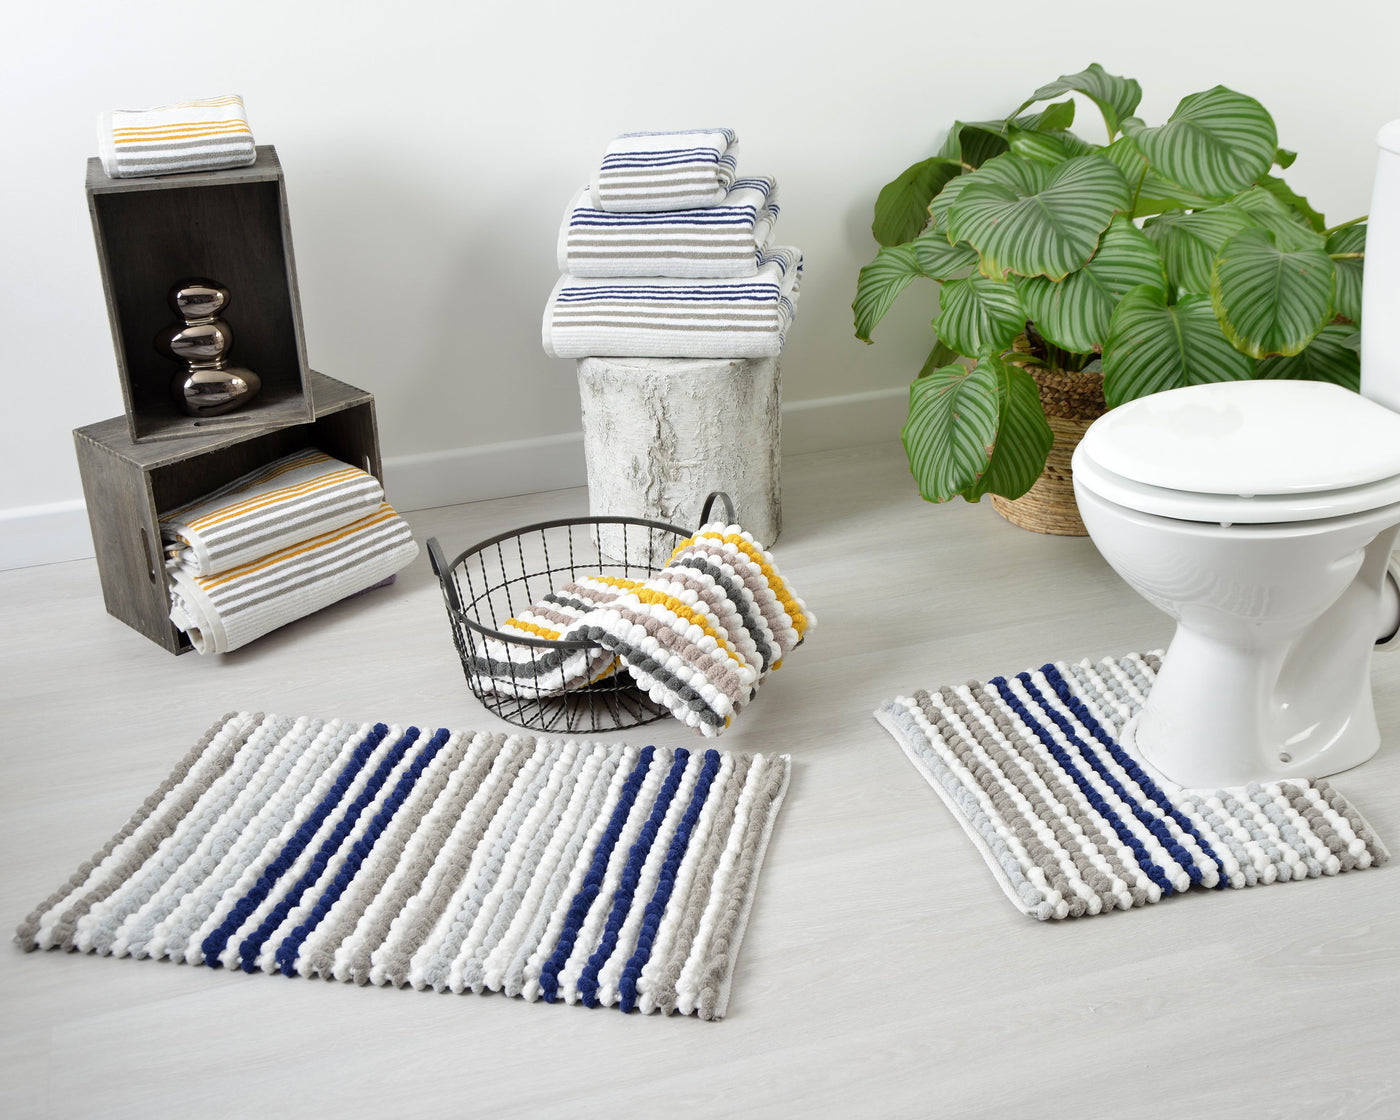 Merlin - Striped Towels and Bath Mats